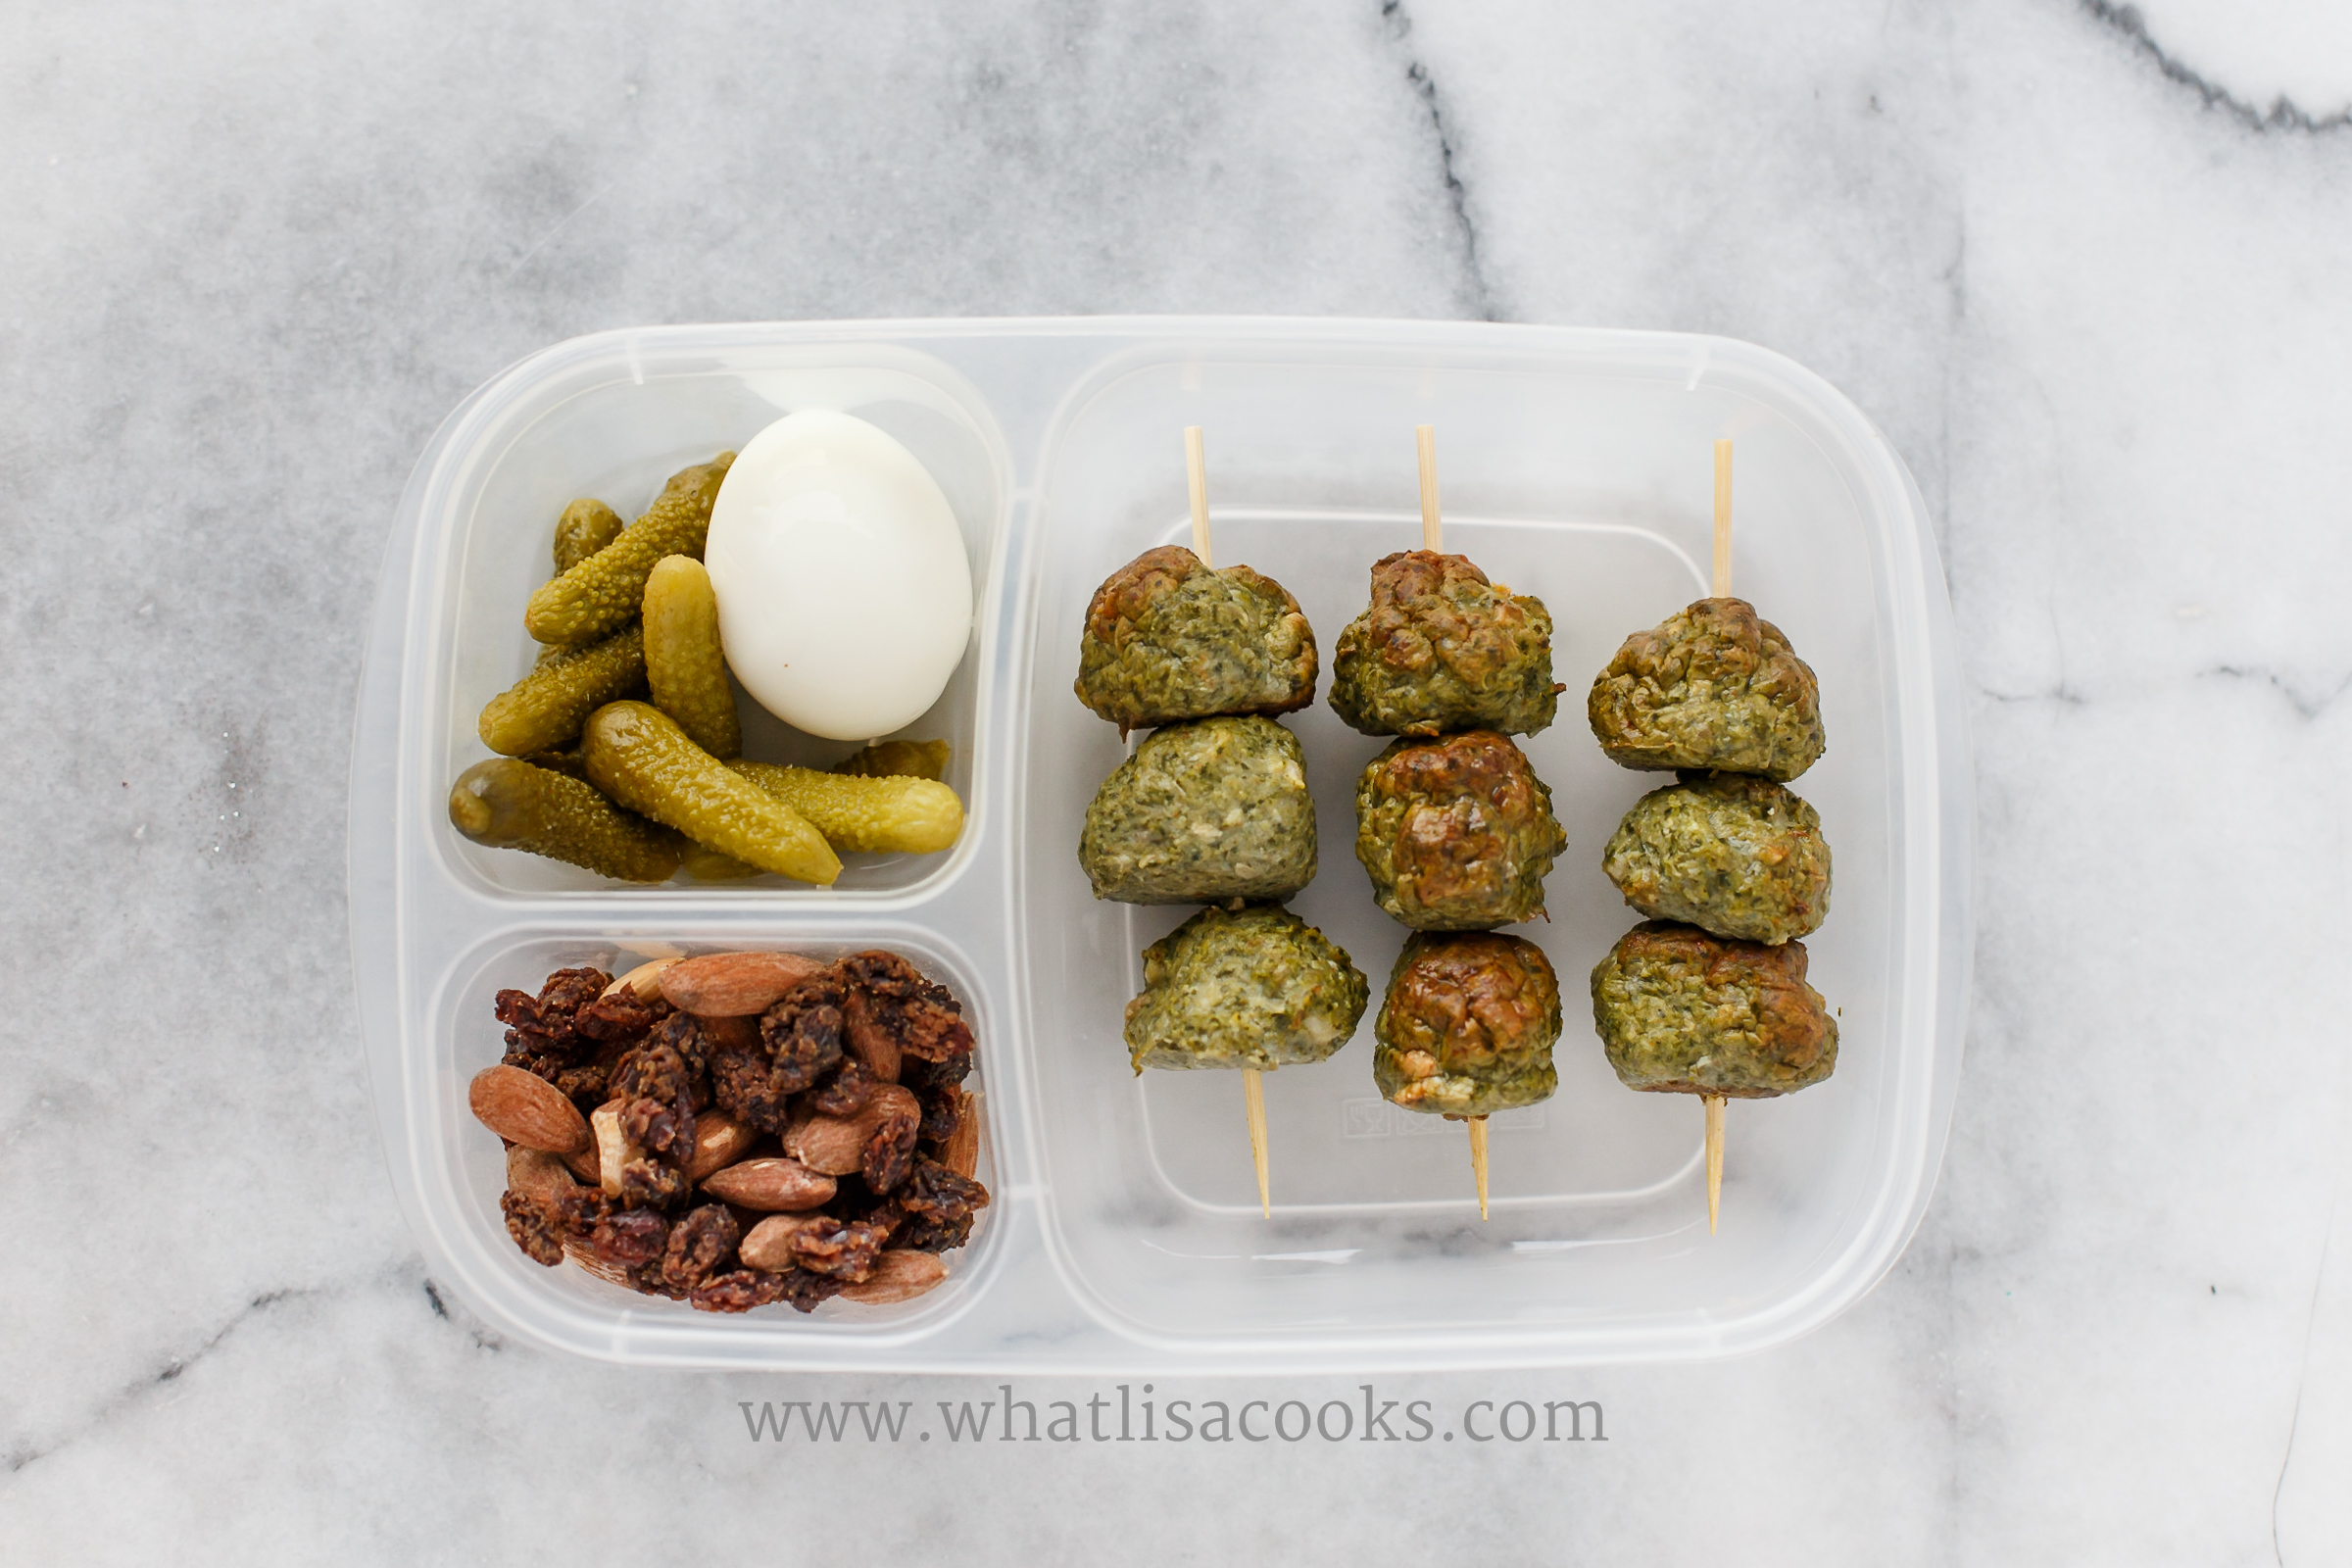 A yummy lunch for me.  Meatballs with sausage, mushrooms and kale.  Boiled egg, pickles, almonds and raisins.